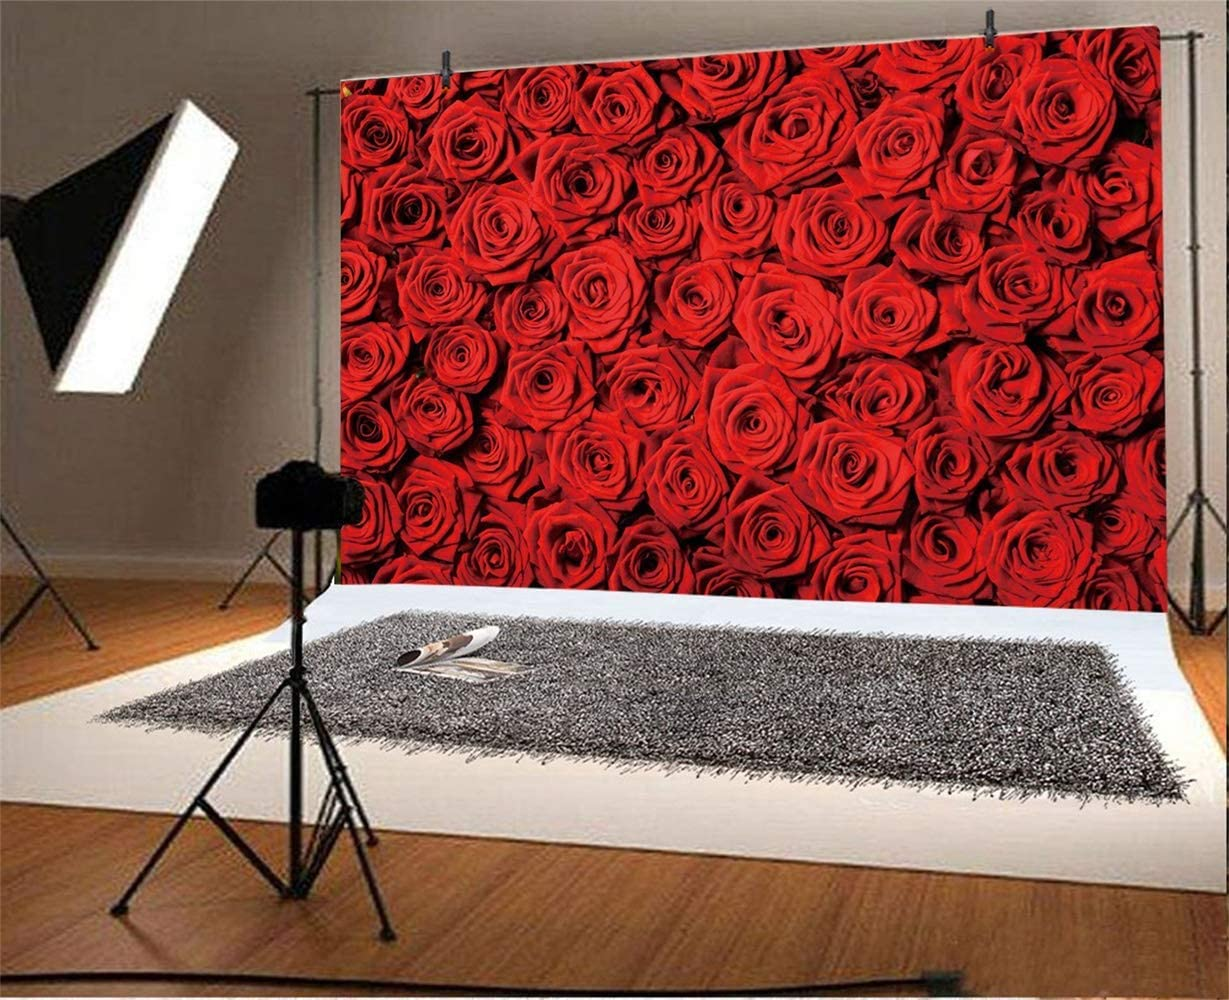 GoHeBe Fullframe Red Rose Flower Wall Backdrop 10x7ft Vinyl Floral Wedding Stage Background Wedding Celebration Photo Booth Flower Decoration Bride Portrait Shoot Bridal Shower Banner Lovers Shoot